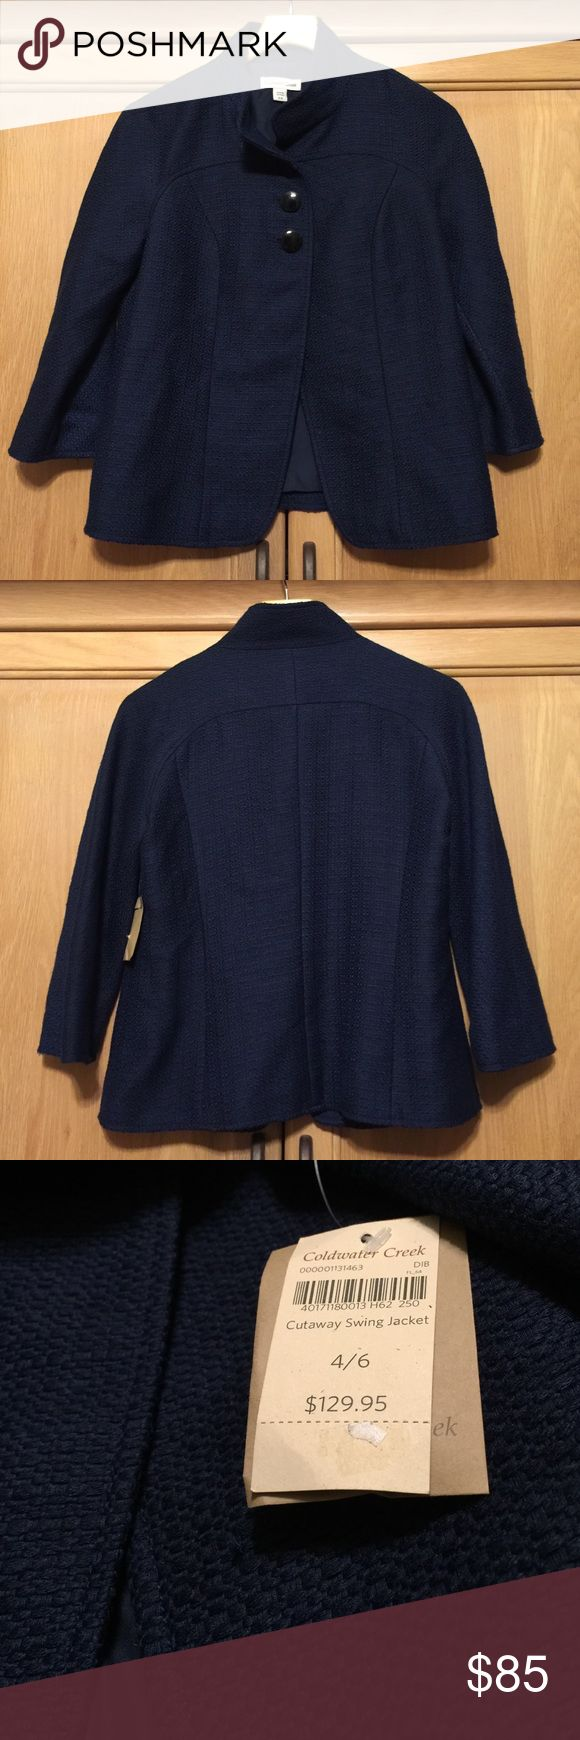 Coldwater Creek Cutaway Swing Jacket NWT! Coldwater Creek Jackets & Coats